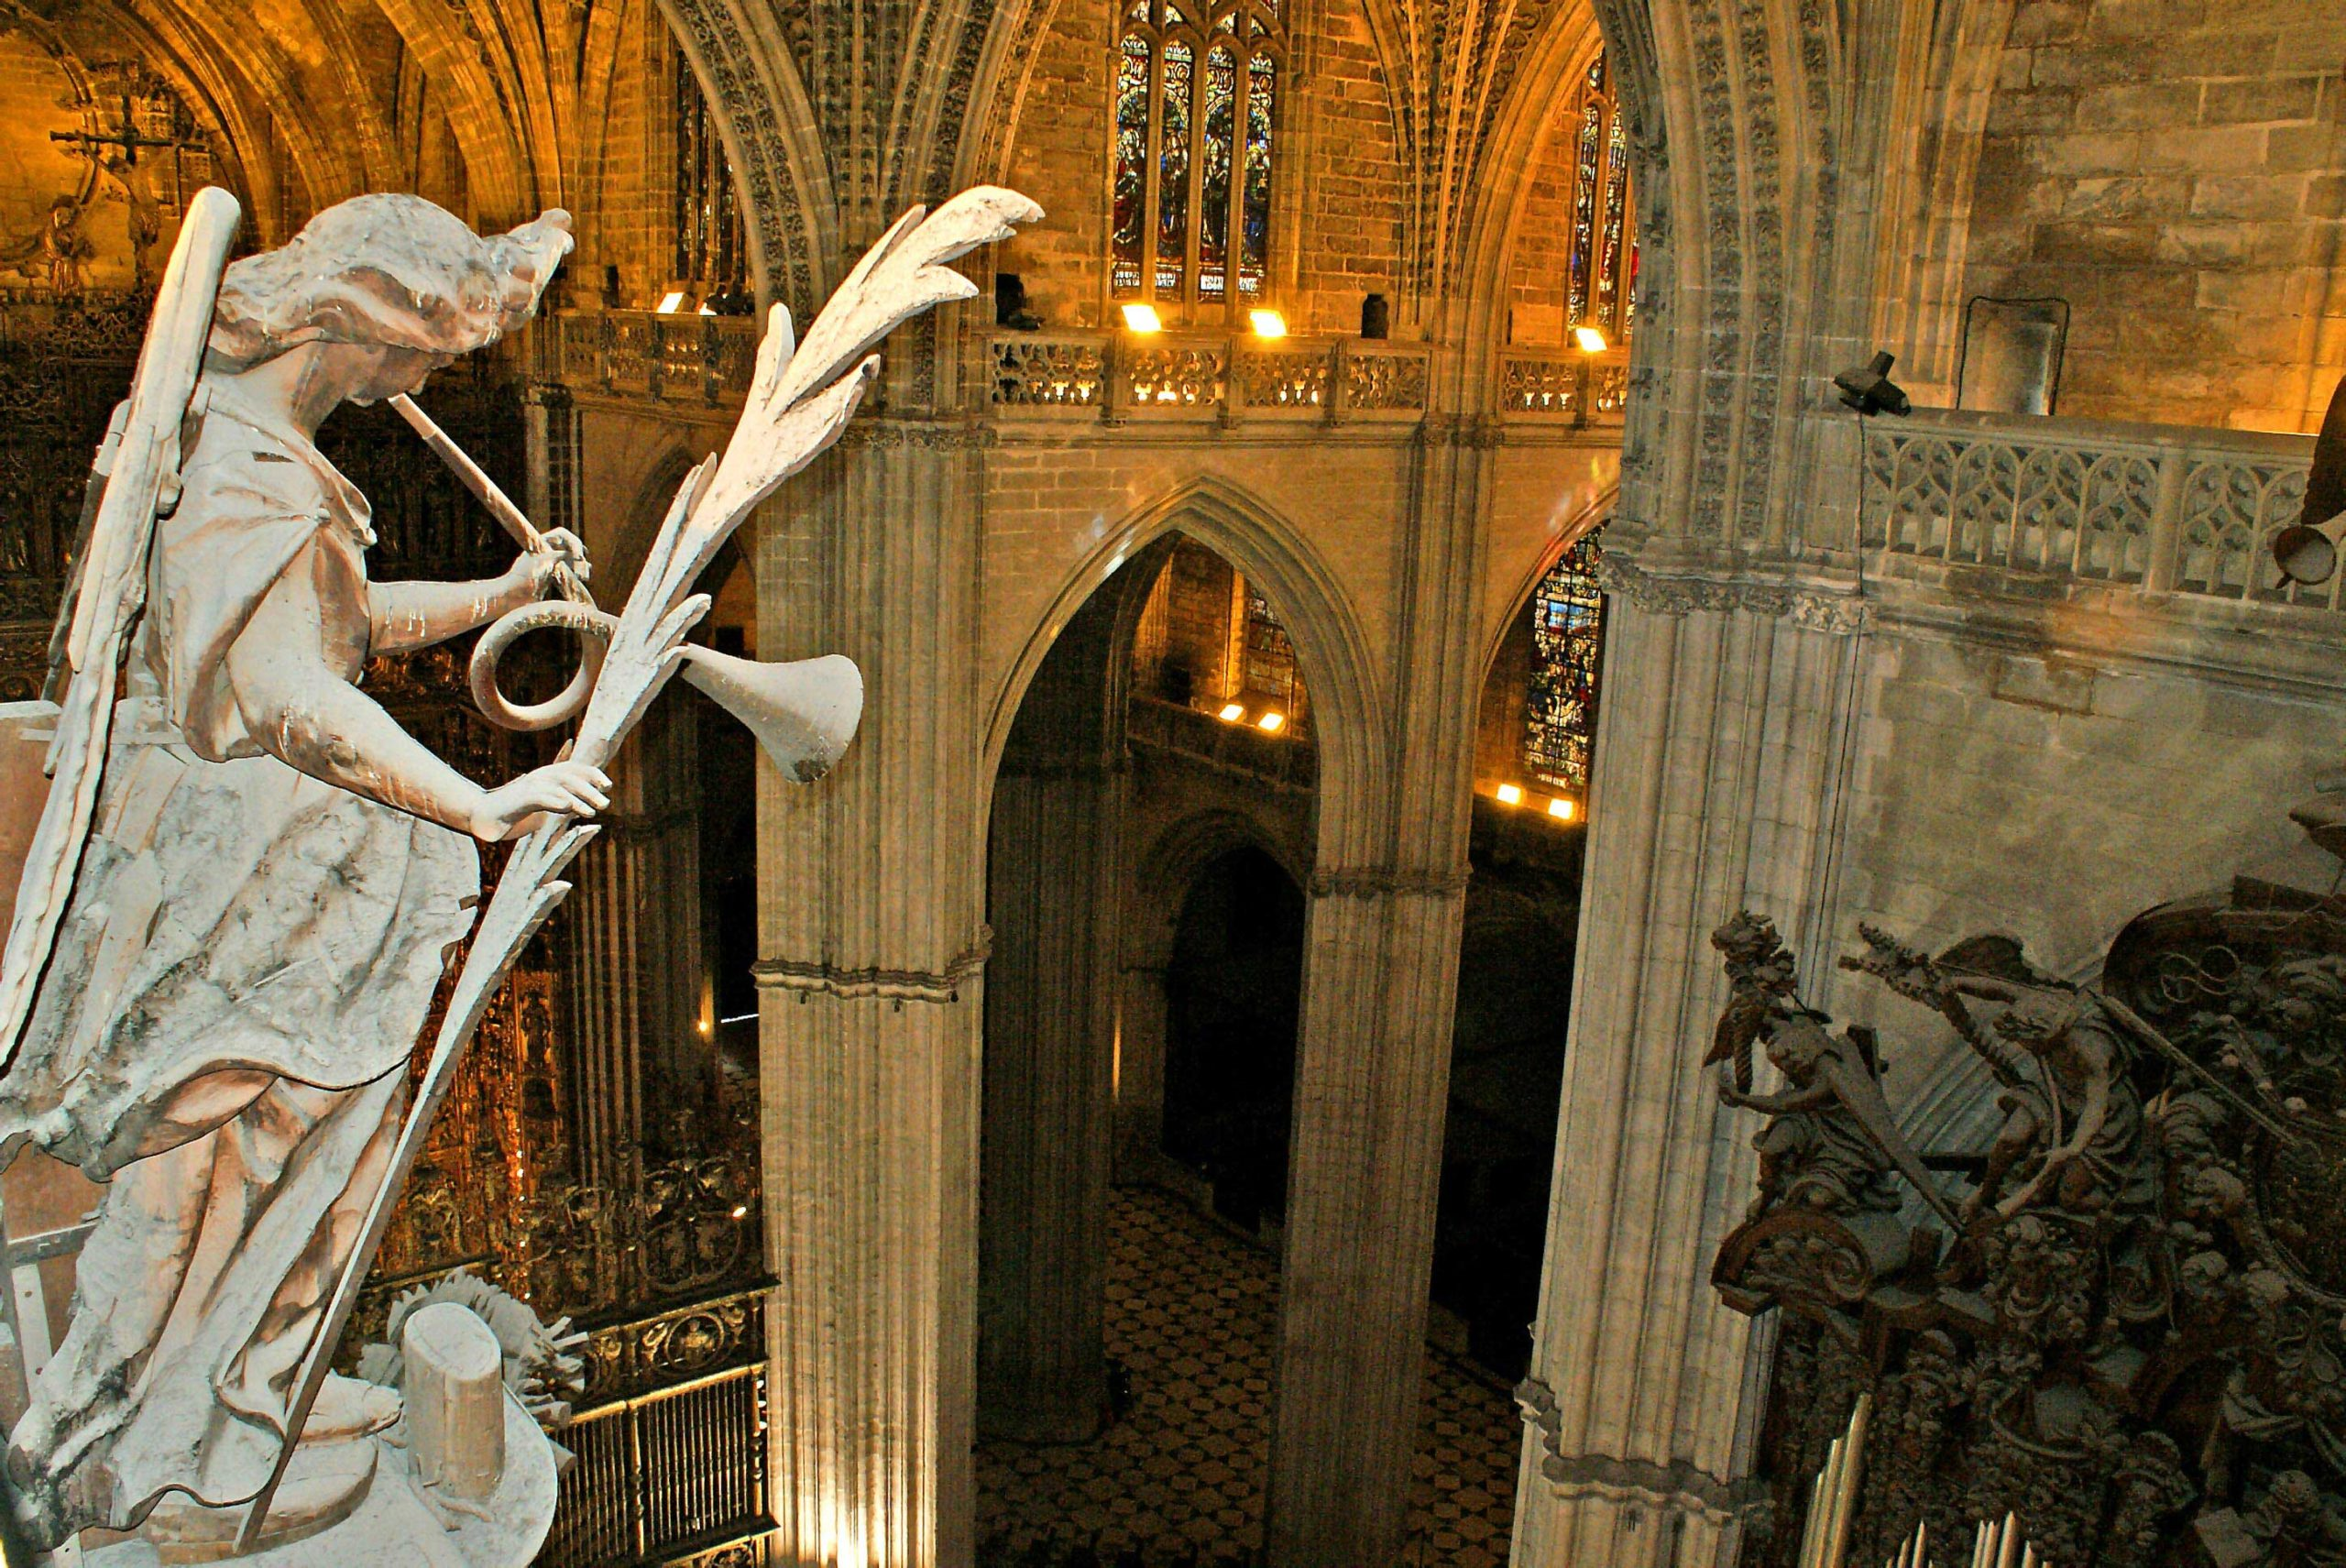 Seville Cathedral private tour from the heights, by Paladar y Tomar